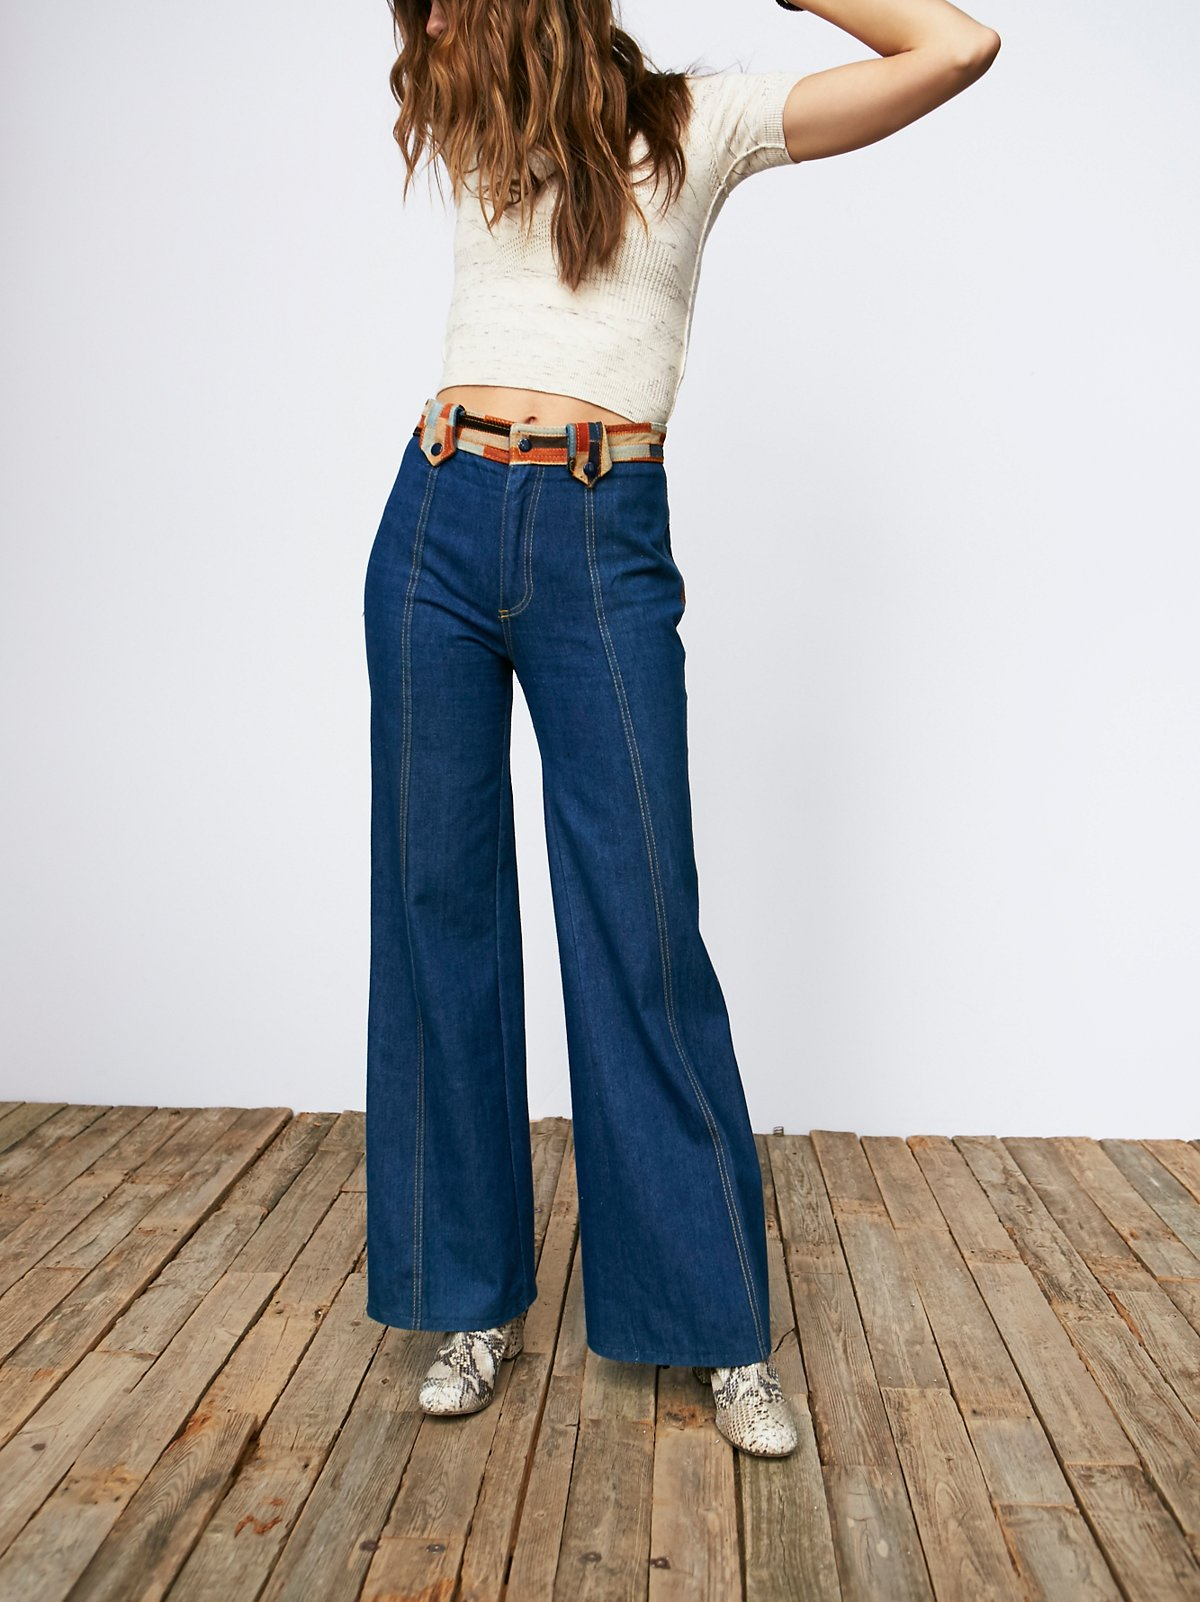 Bell Bottoms Vintage 50